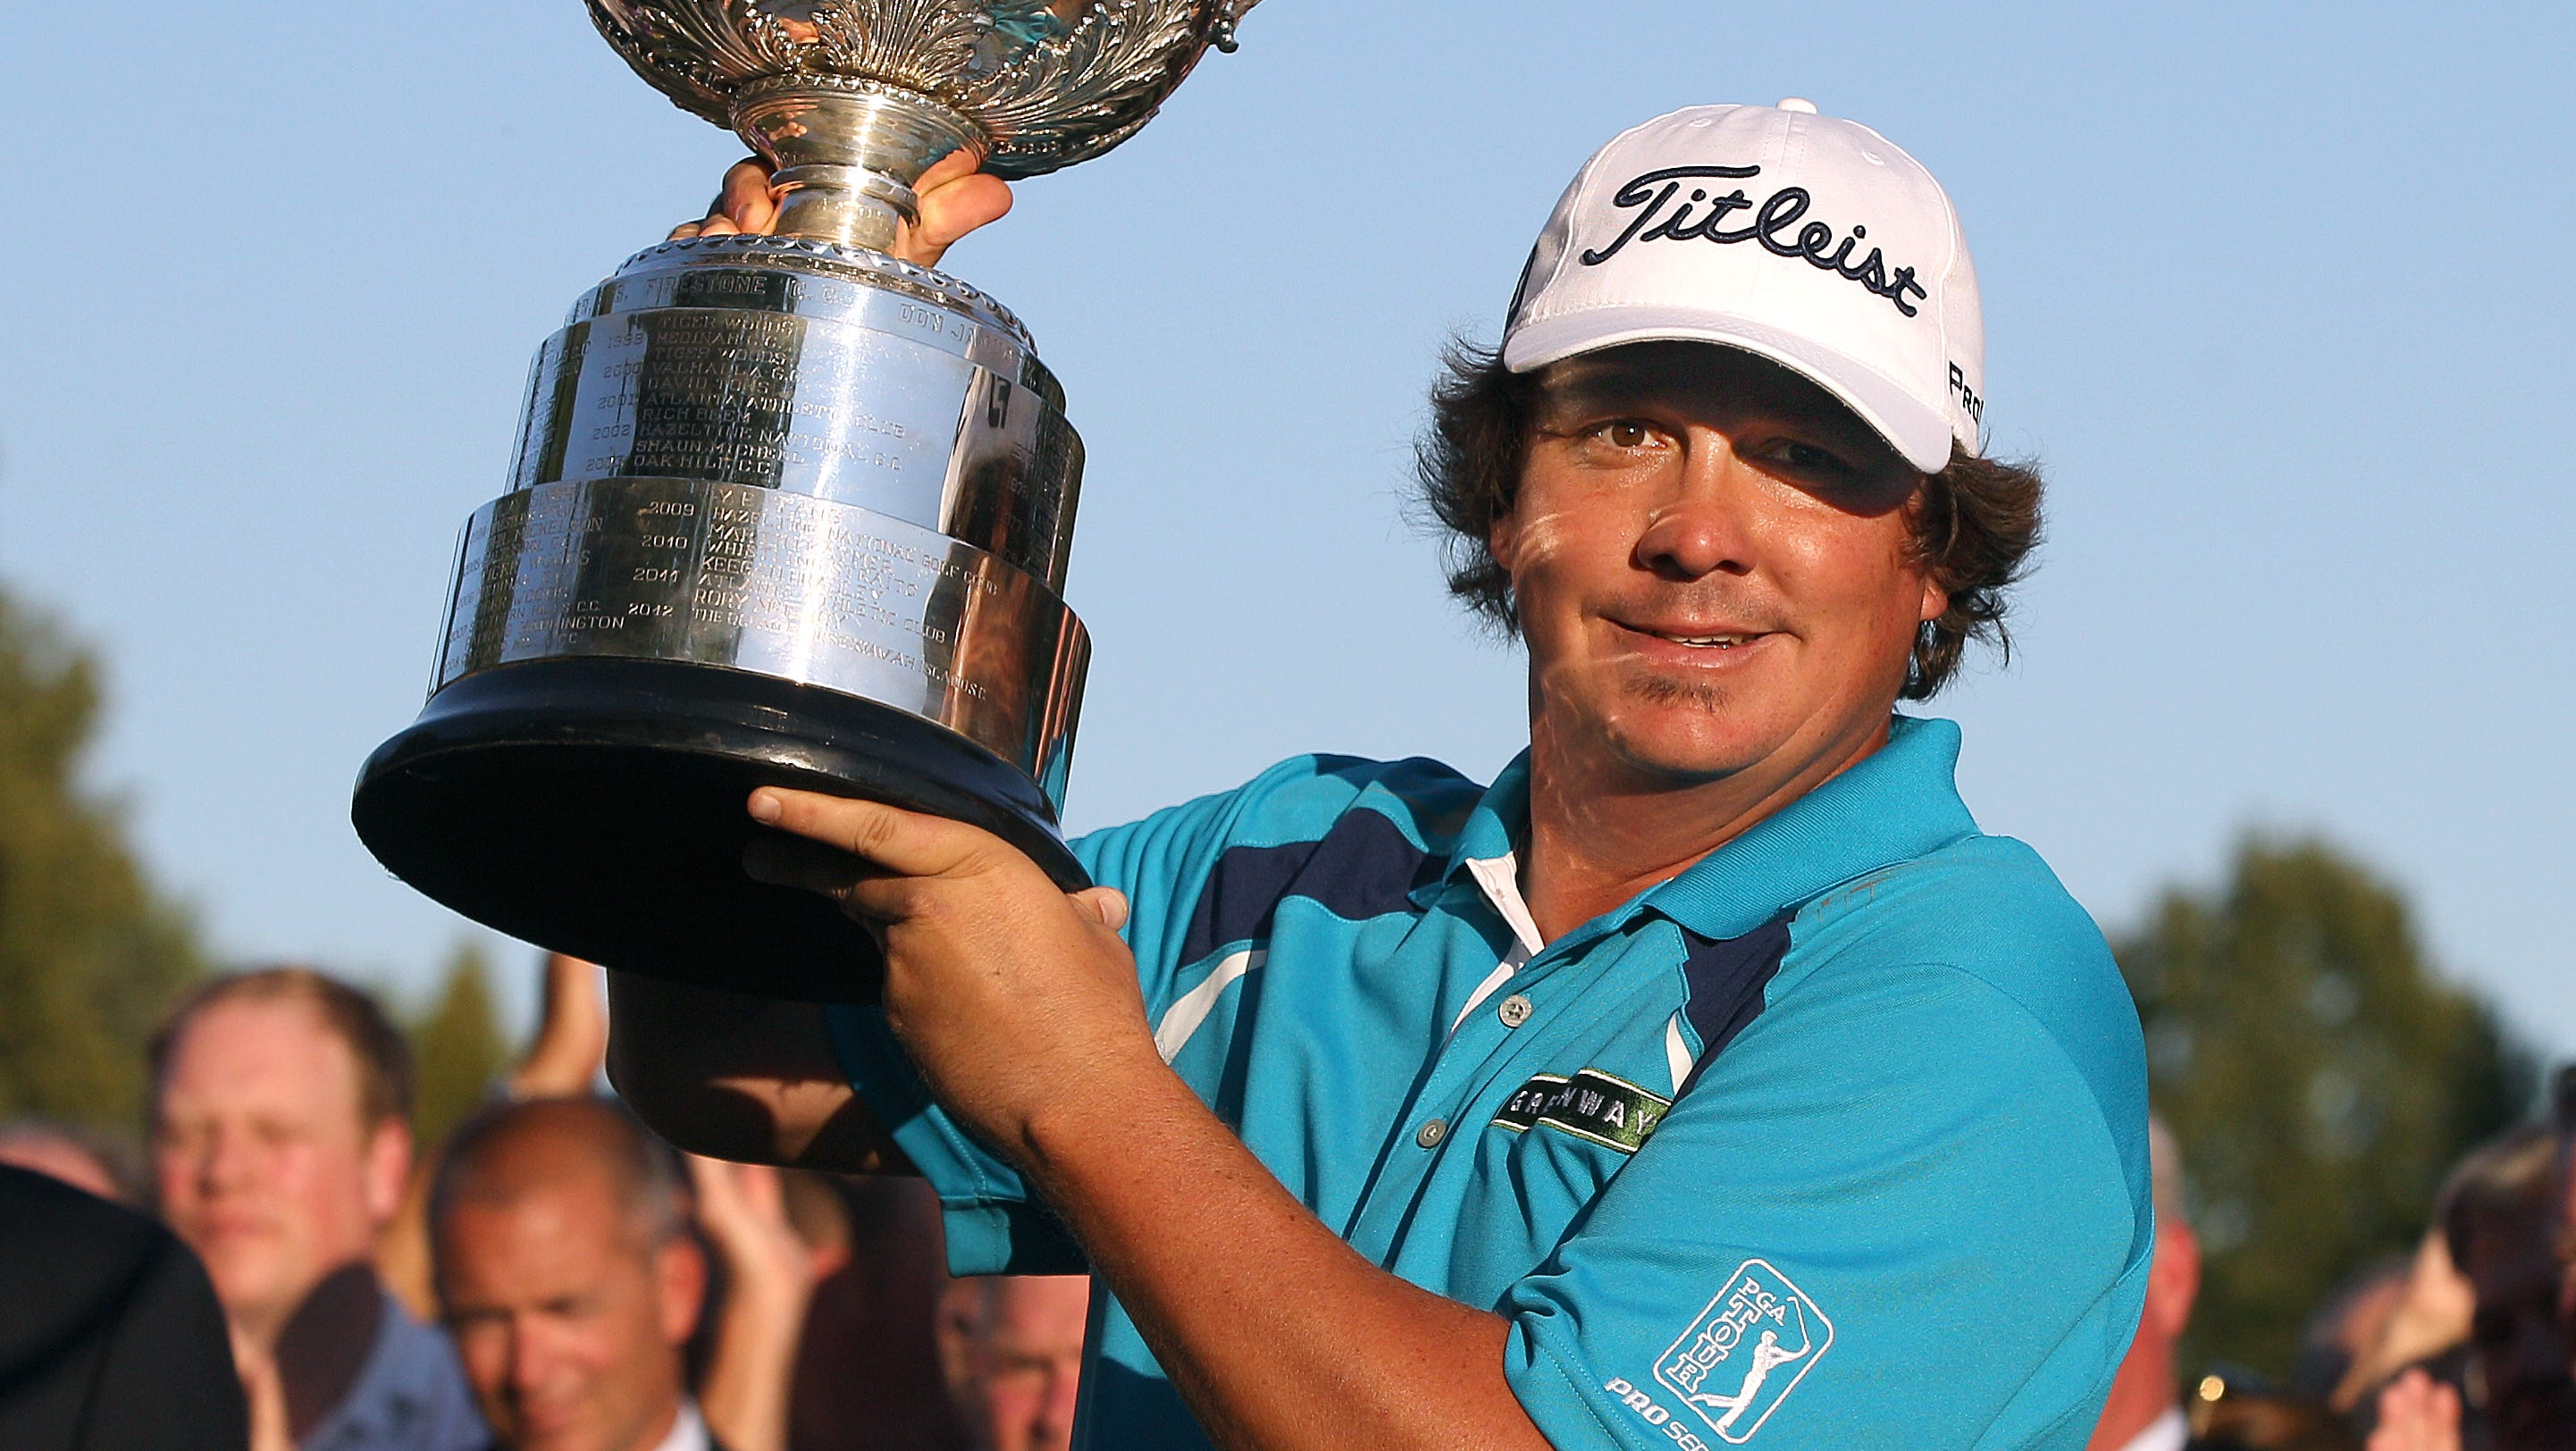 Jason Dufner raises the Wanamaker trophy after winning the 2013 PGA Championship beating Jim Furyk.